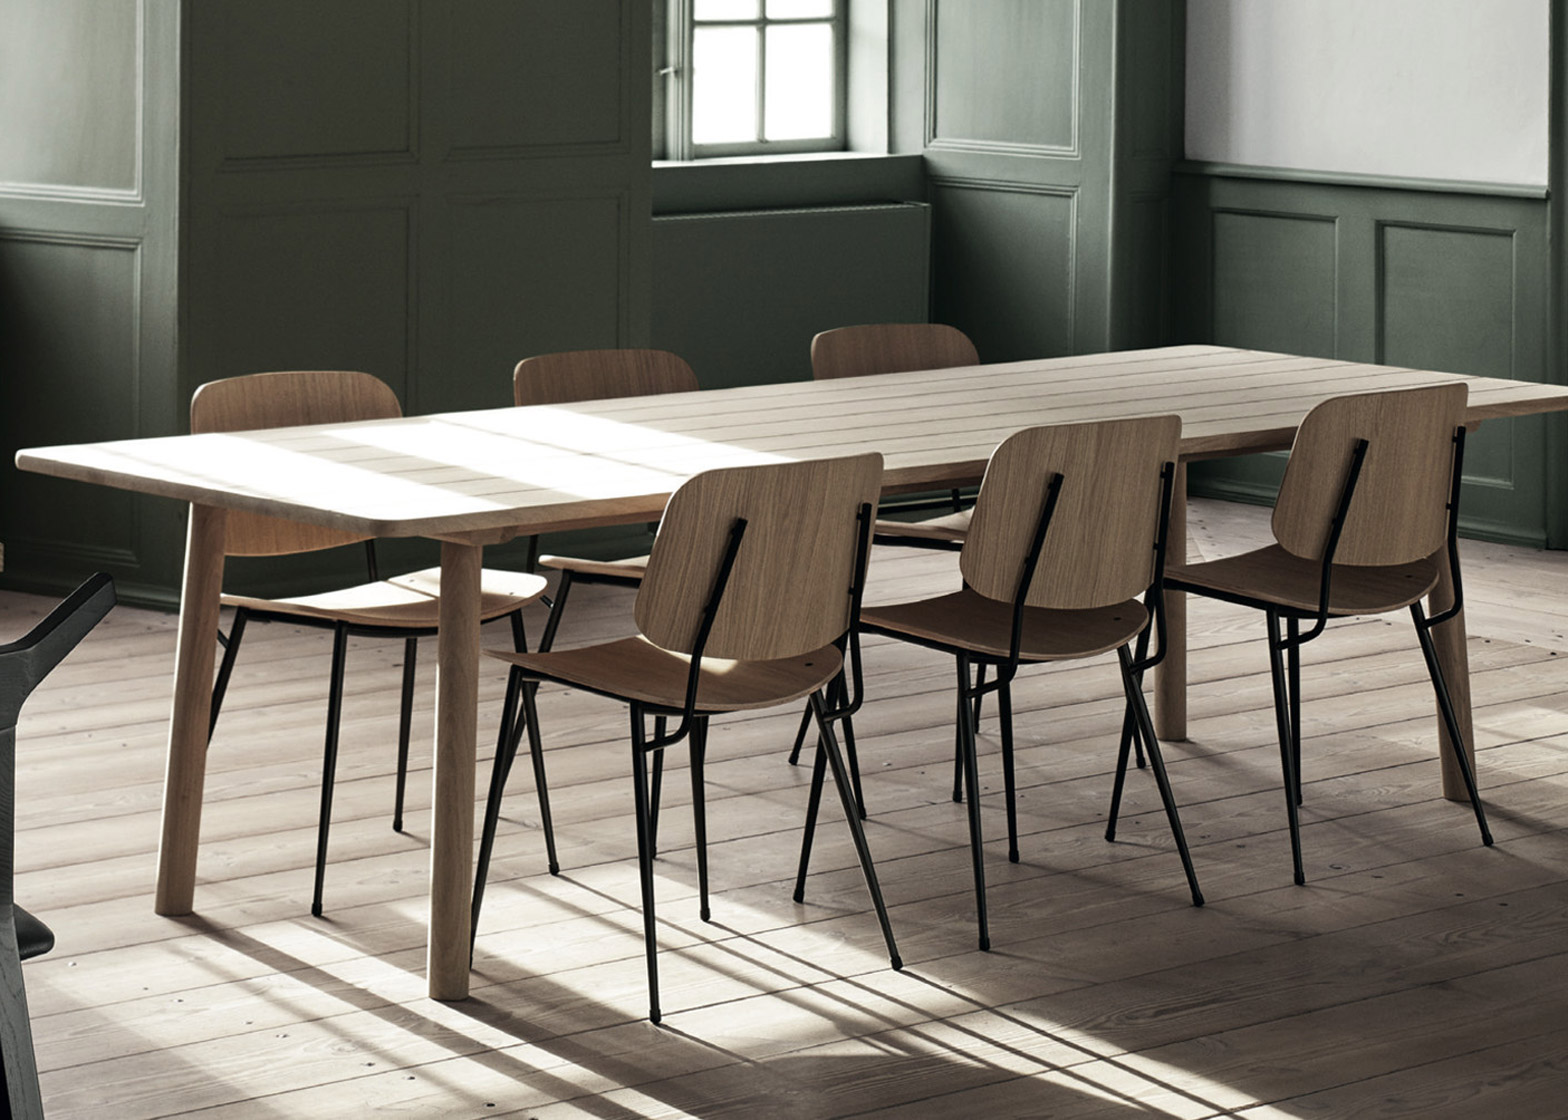 Jasper Morrison collection for Fredericia